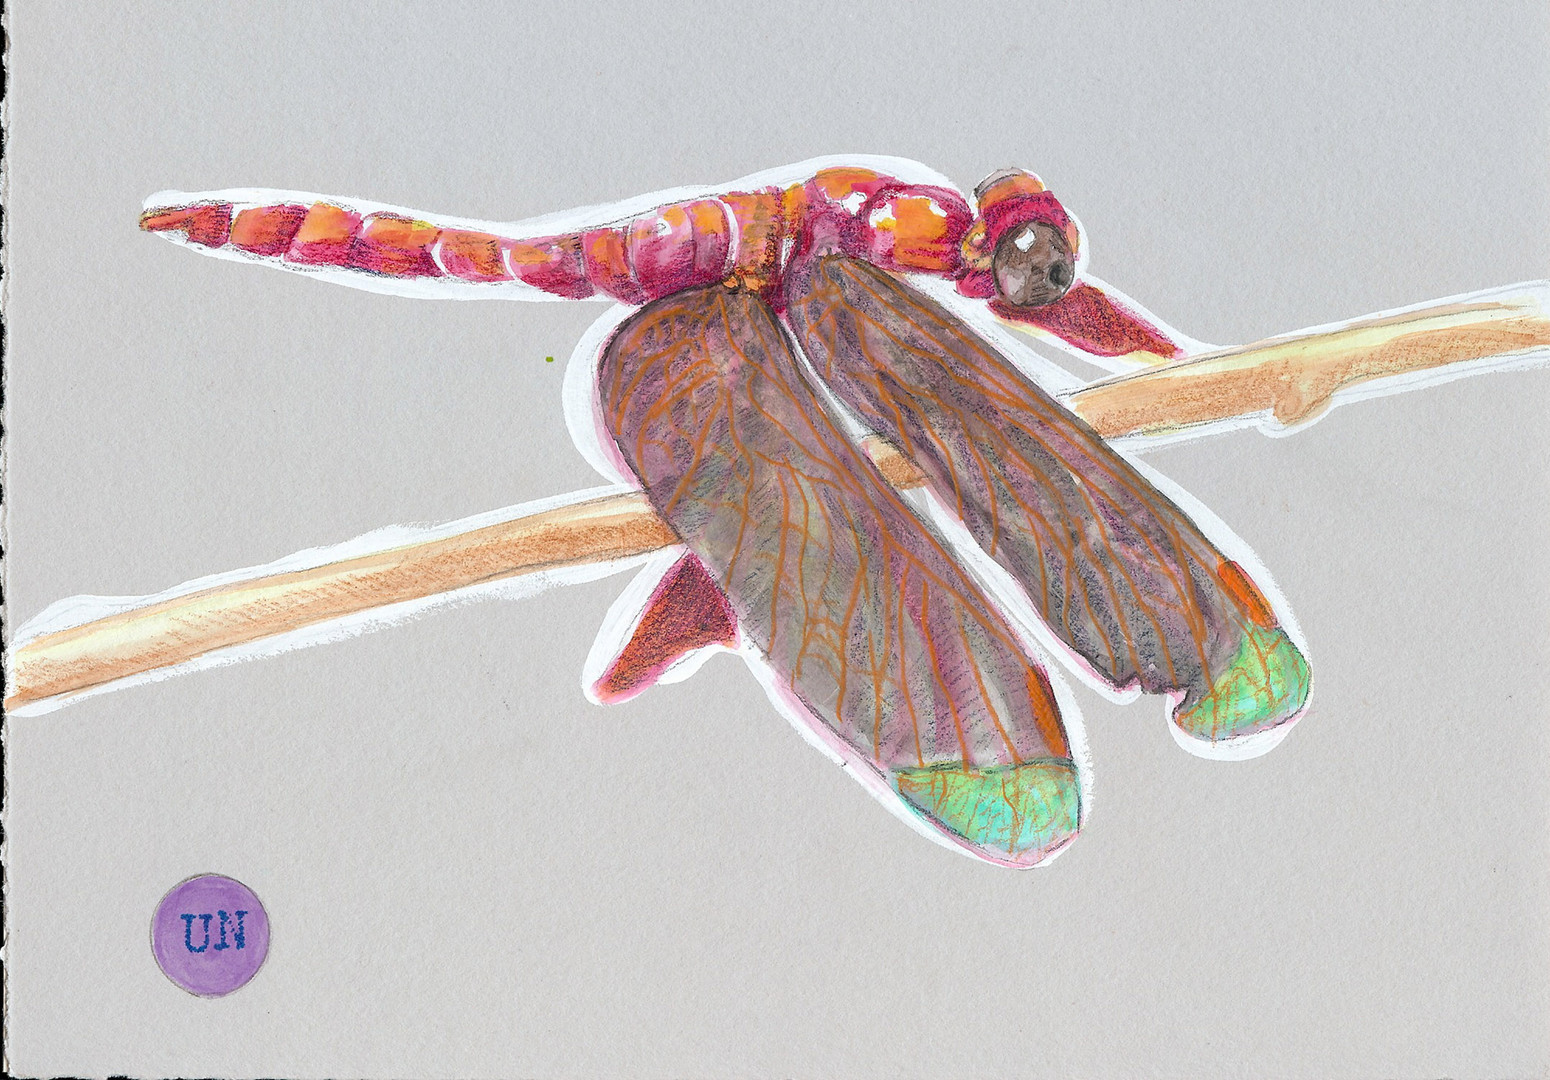 Grasshawk Dragonfly Unknown.jpg